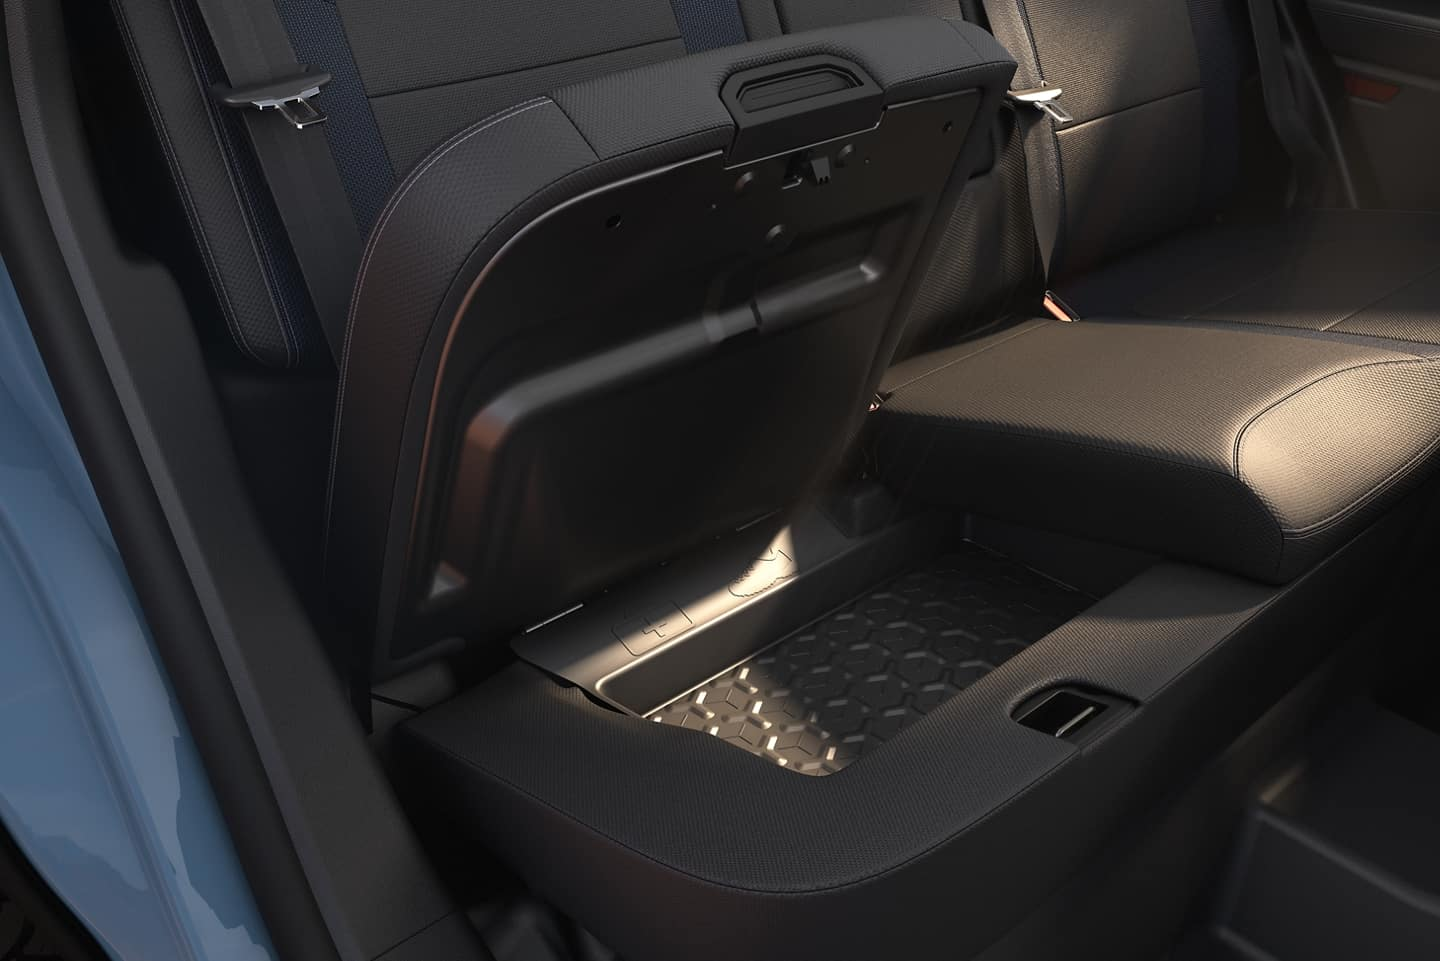 Interior pic of Ford Bronco sport - coming 2021.